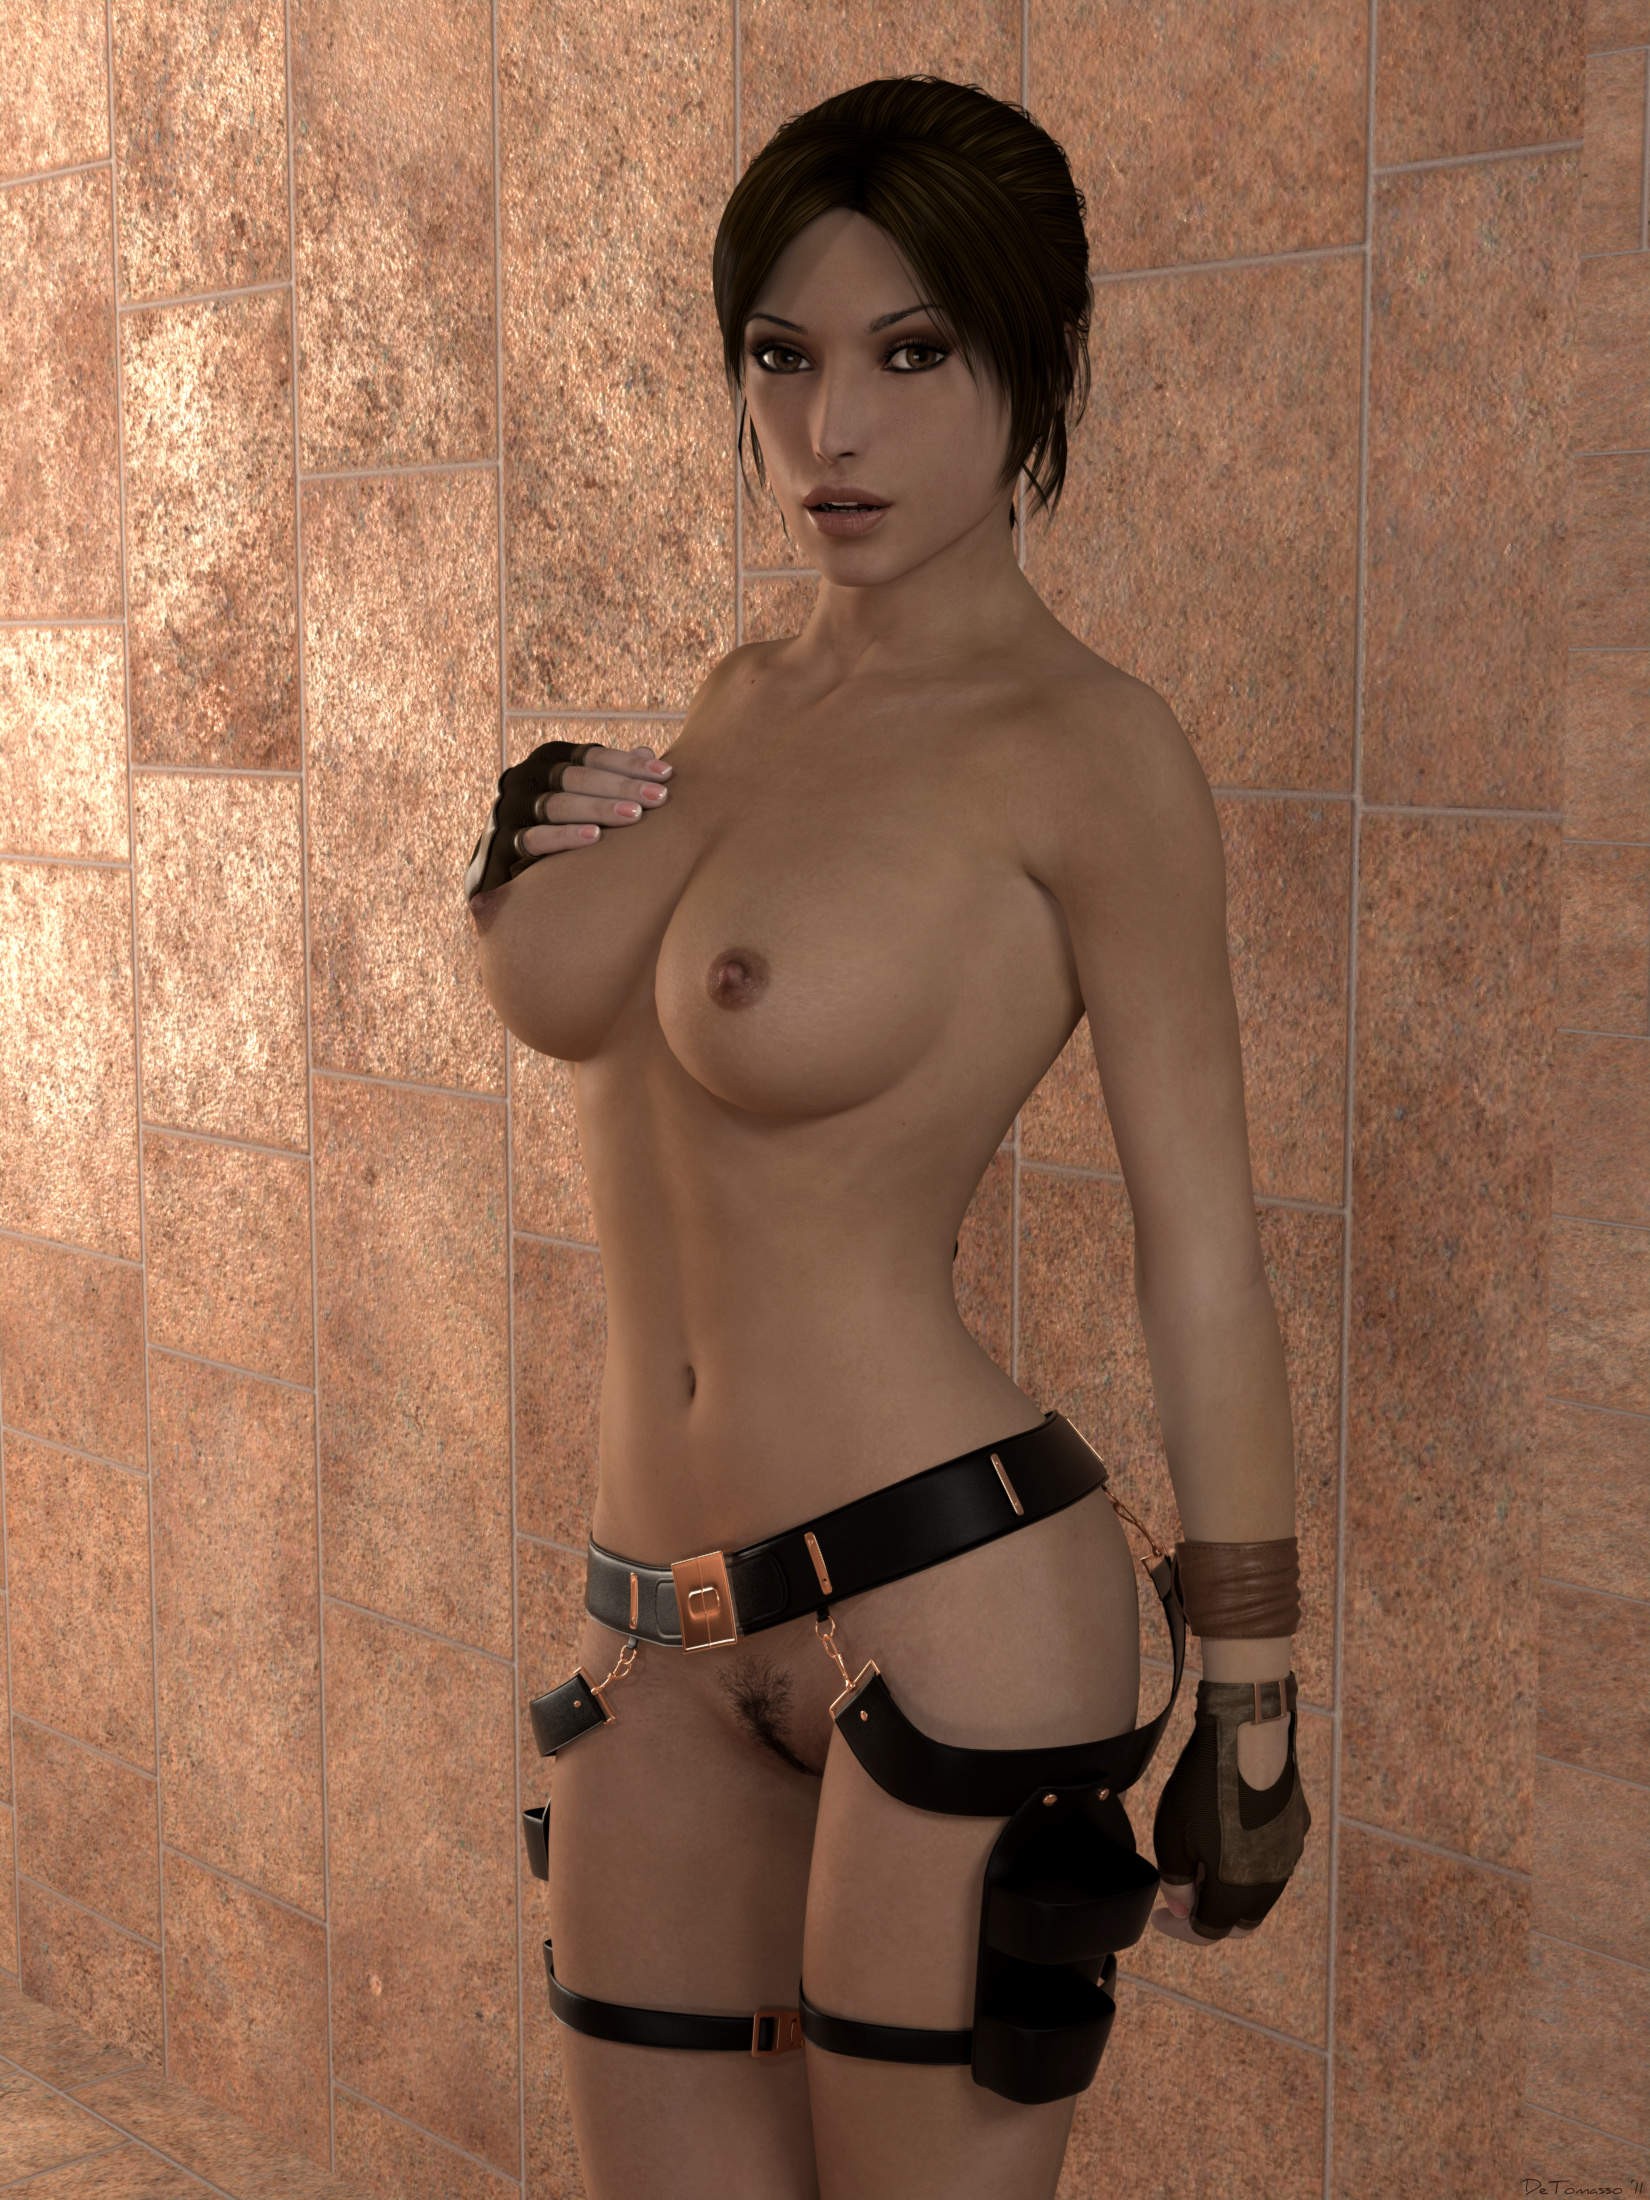 Lara croft tied tube porncraft gallery